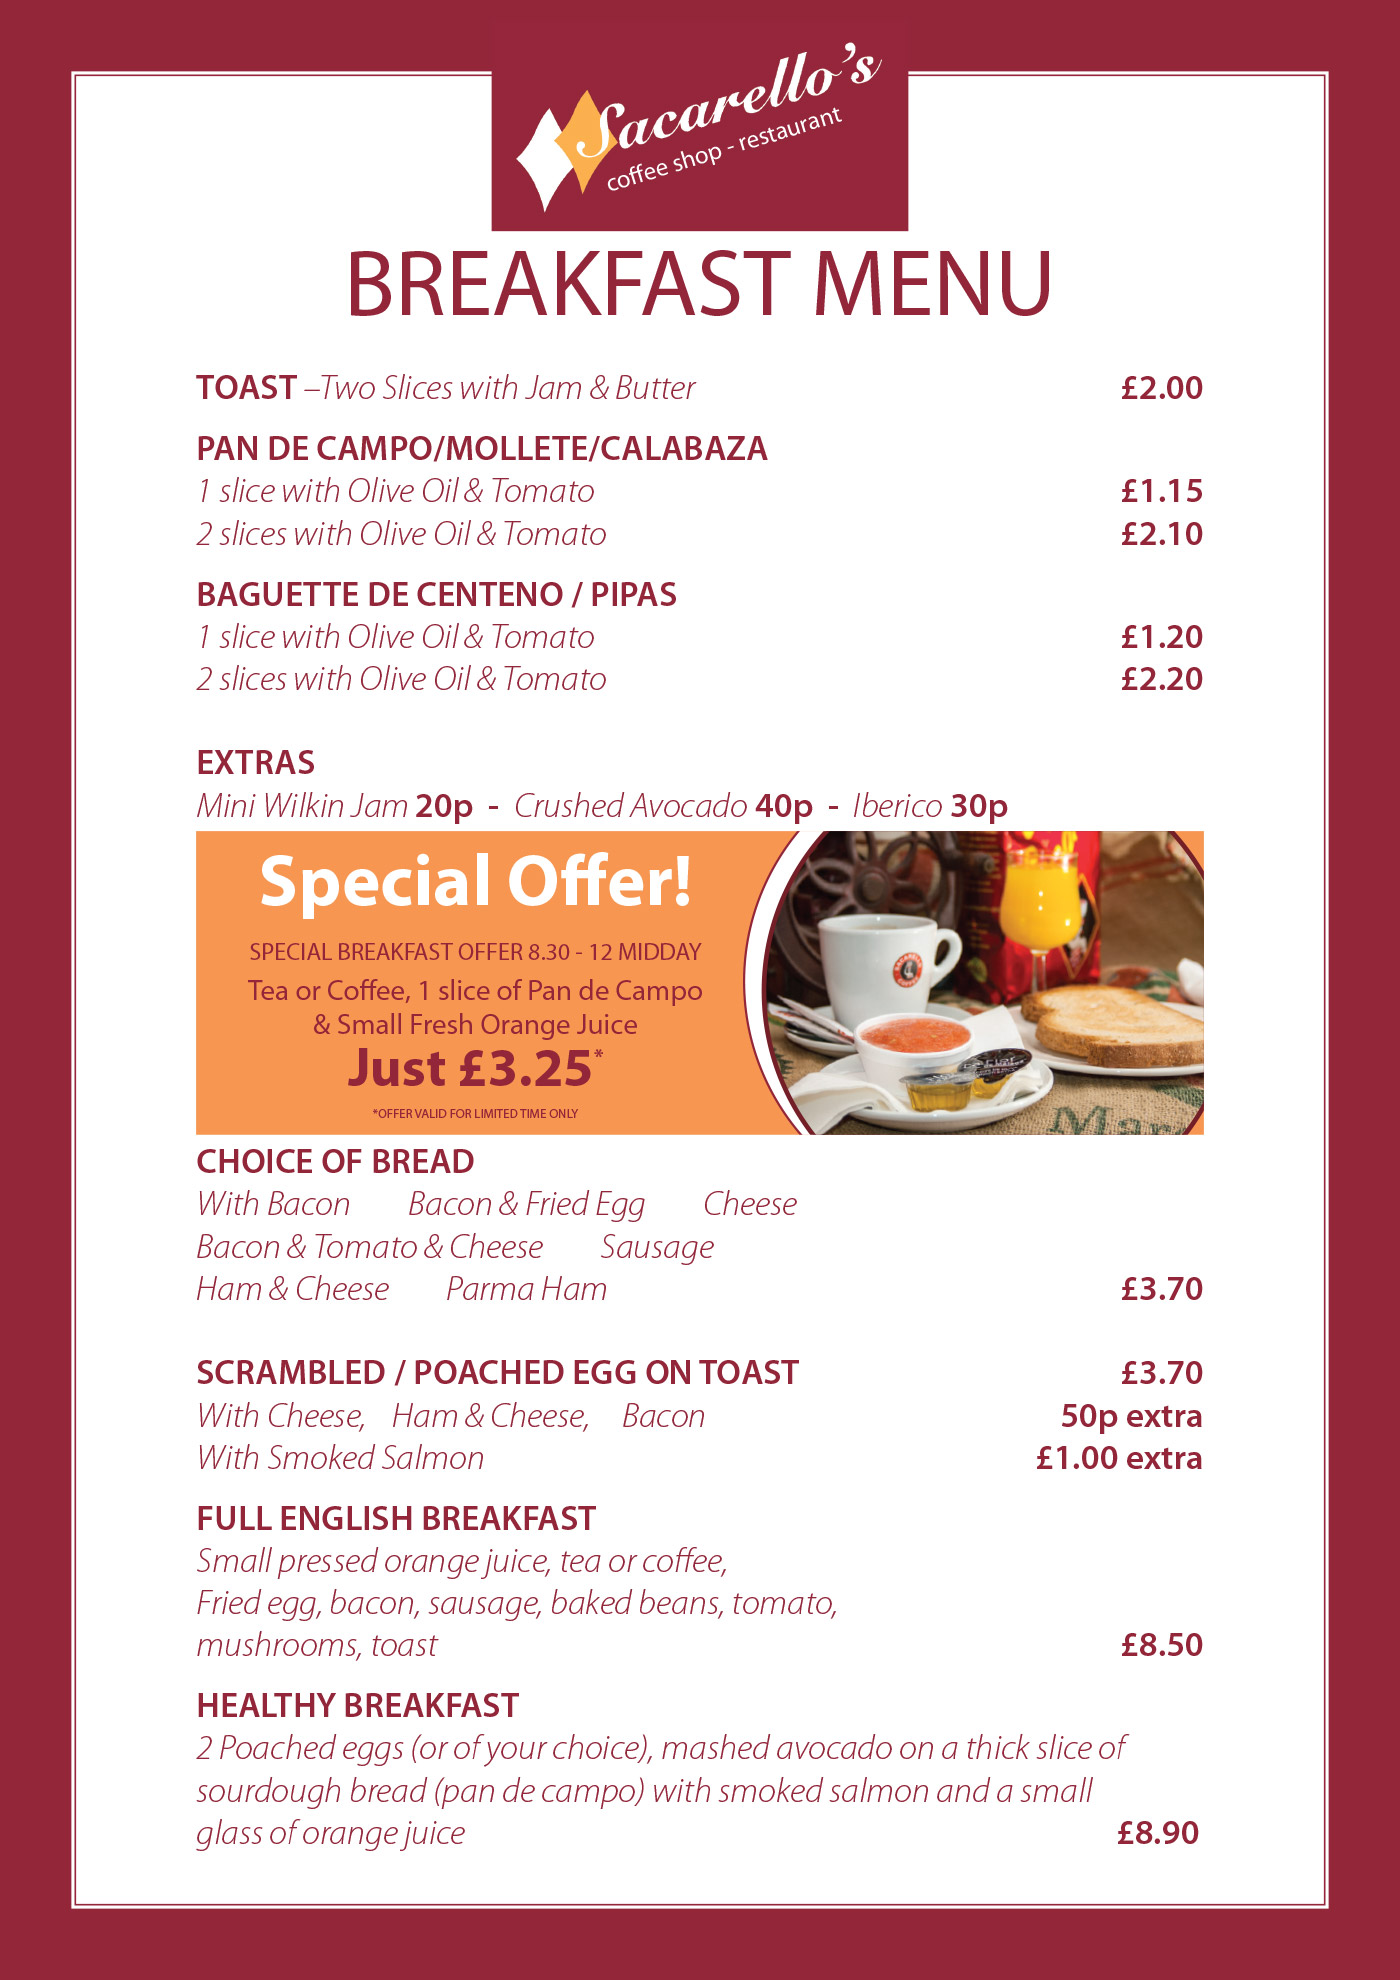 Sacarello's Breakfast Menu